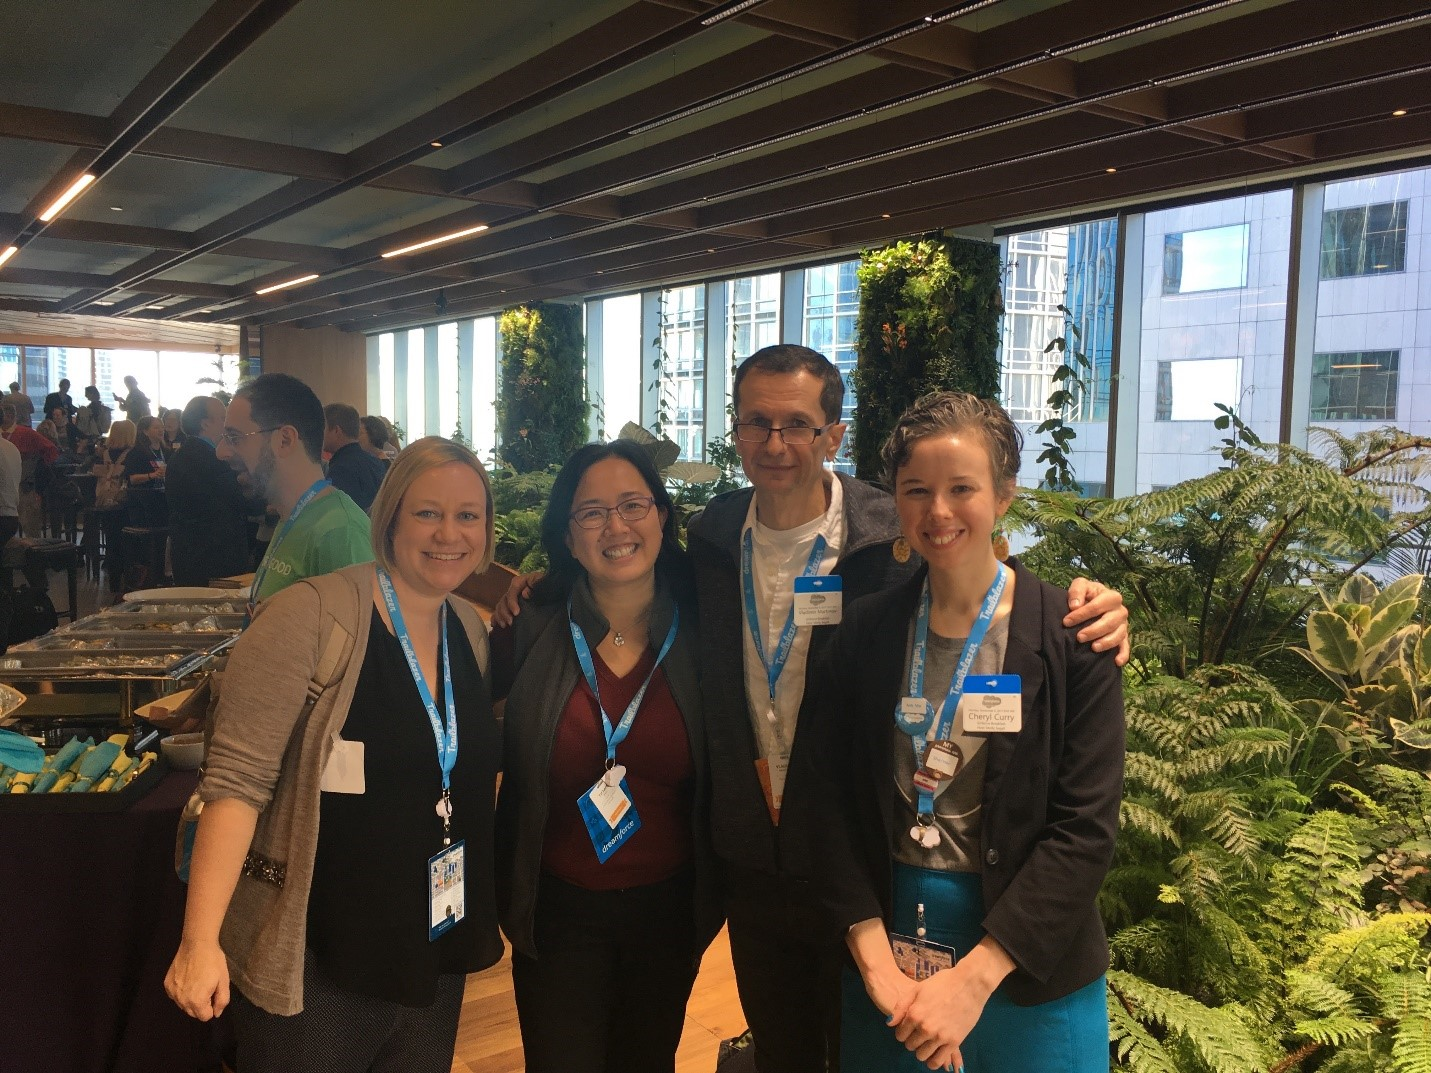 [Above: The HomeKeeper Team at the 2017 Amplify Breakfast – left to right, Valerie Rogers, Tiffany Eng, Vladimir Martinov (Developer at DaizyLogik) and Cheryl]